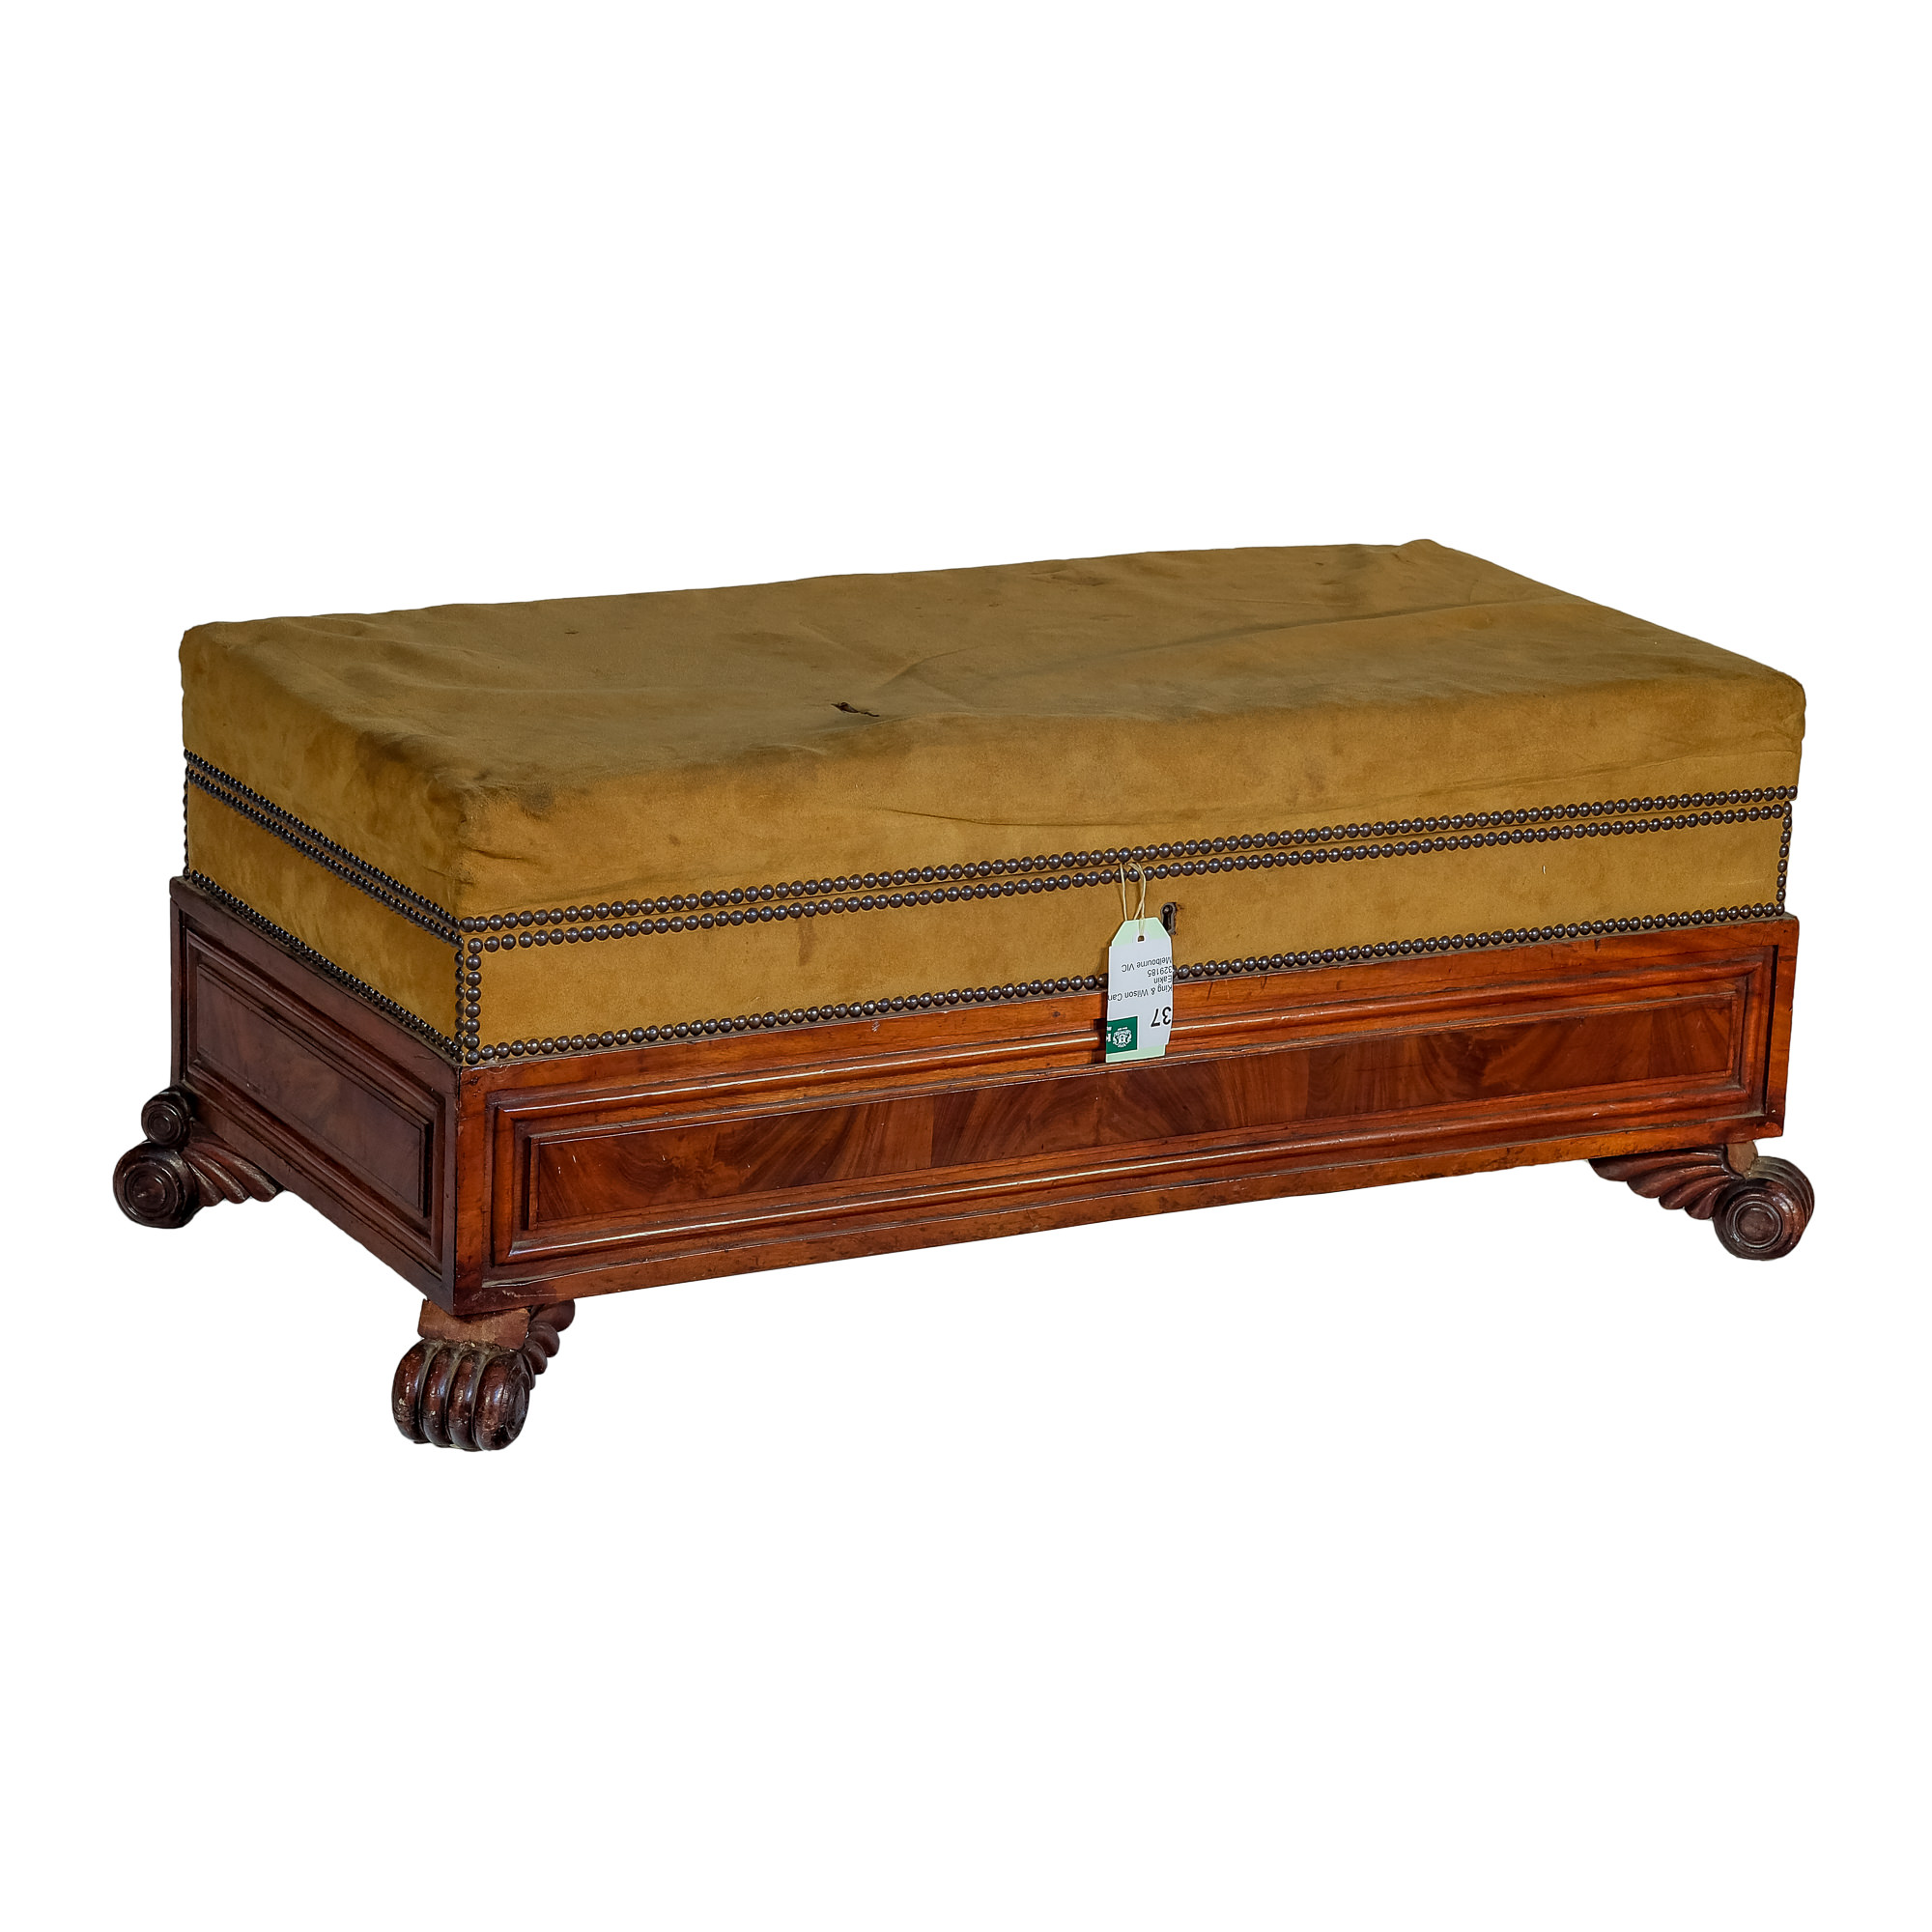 'William IV Mahogany Sarcophagus Ottoman with Lions Paw Feet Circa 1835'